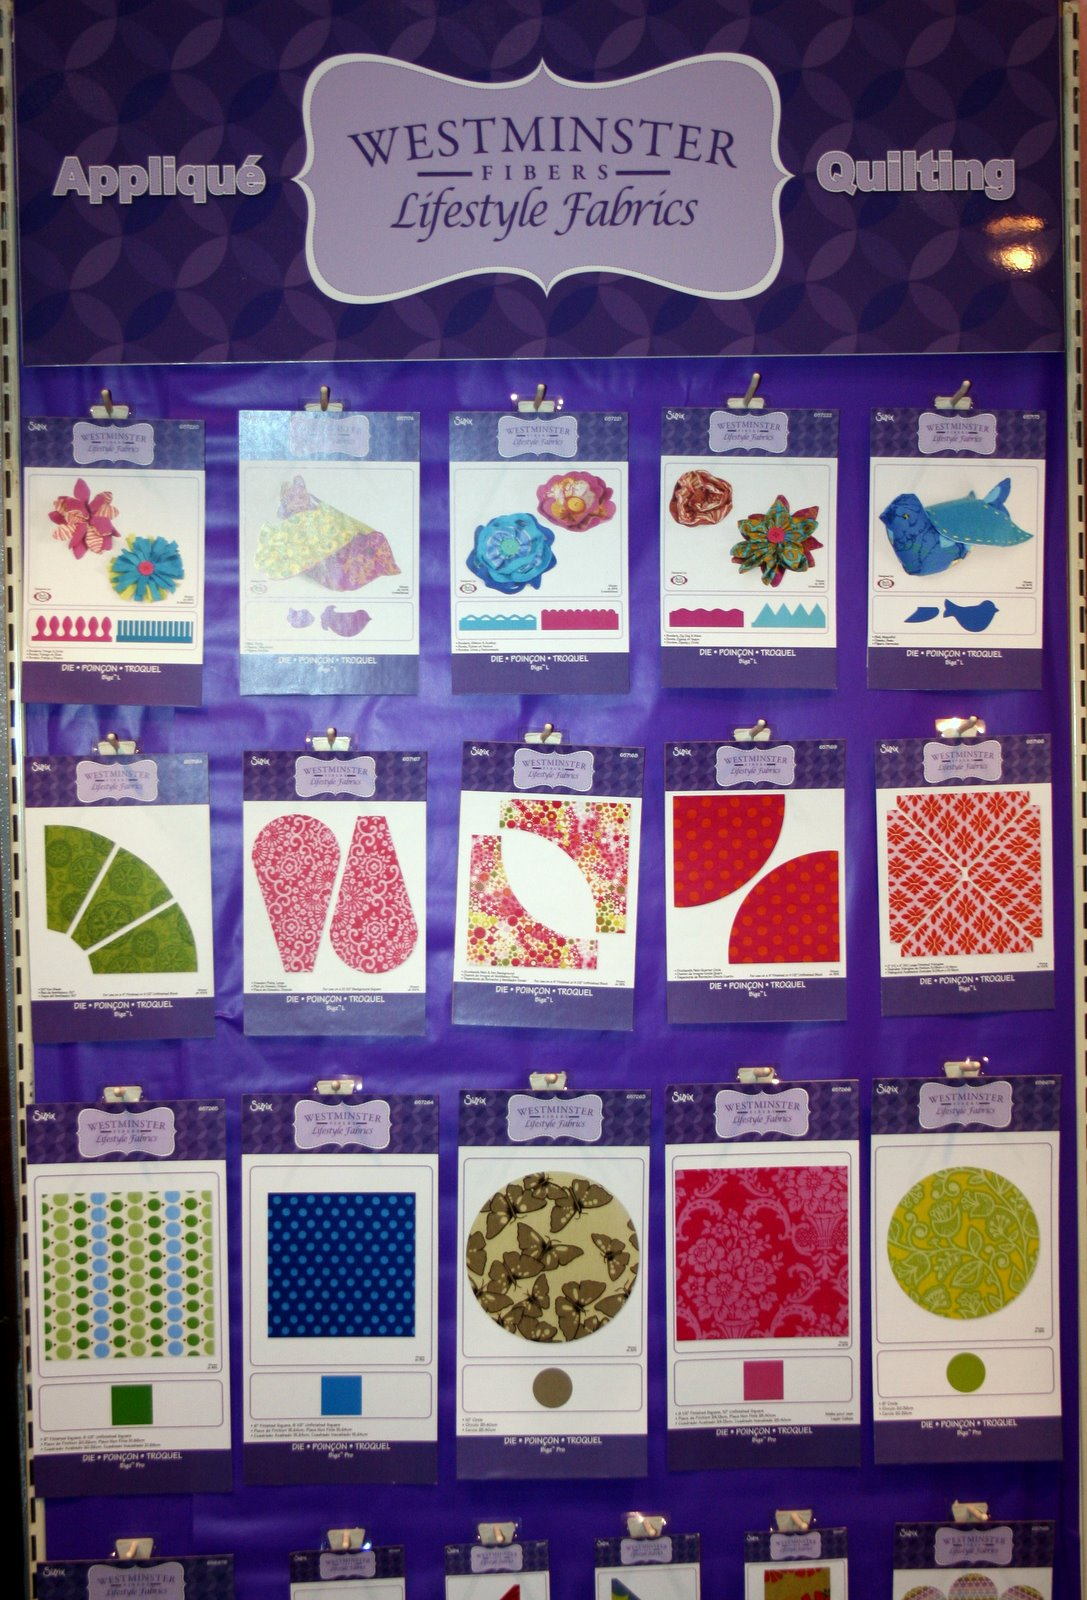 I Have A Notion: Quilting By Design - Sizzix and Westminster's ... : quilt dies - Adamdwight.com